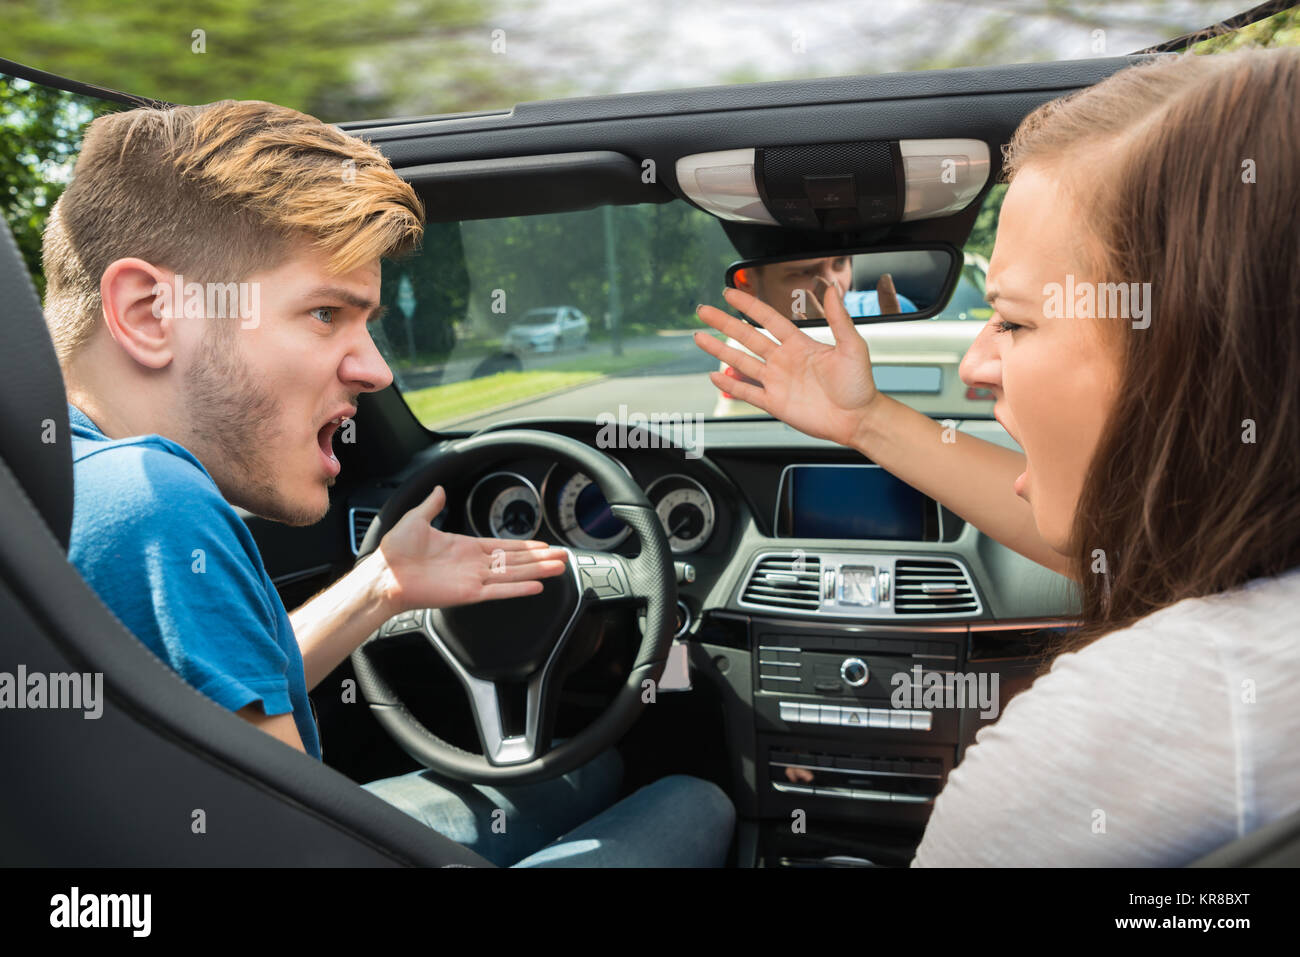 Couple By Car Argue High Resolution Stock Photography And Images Alamy